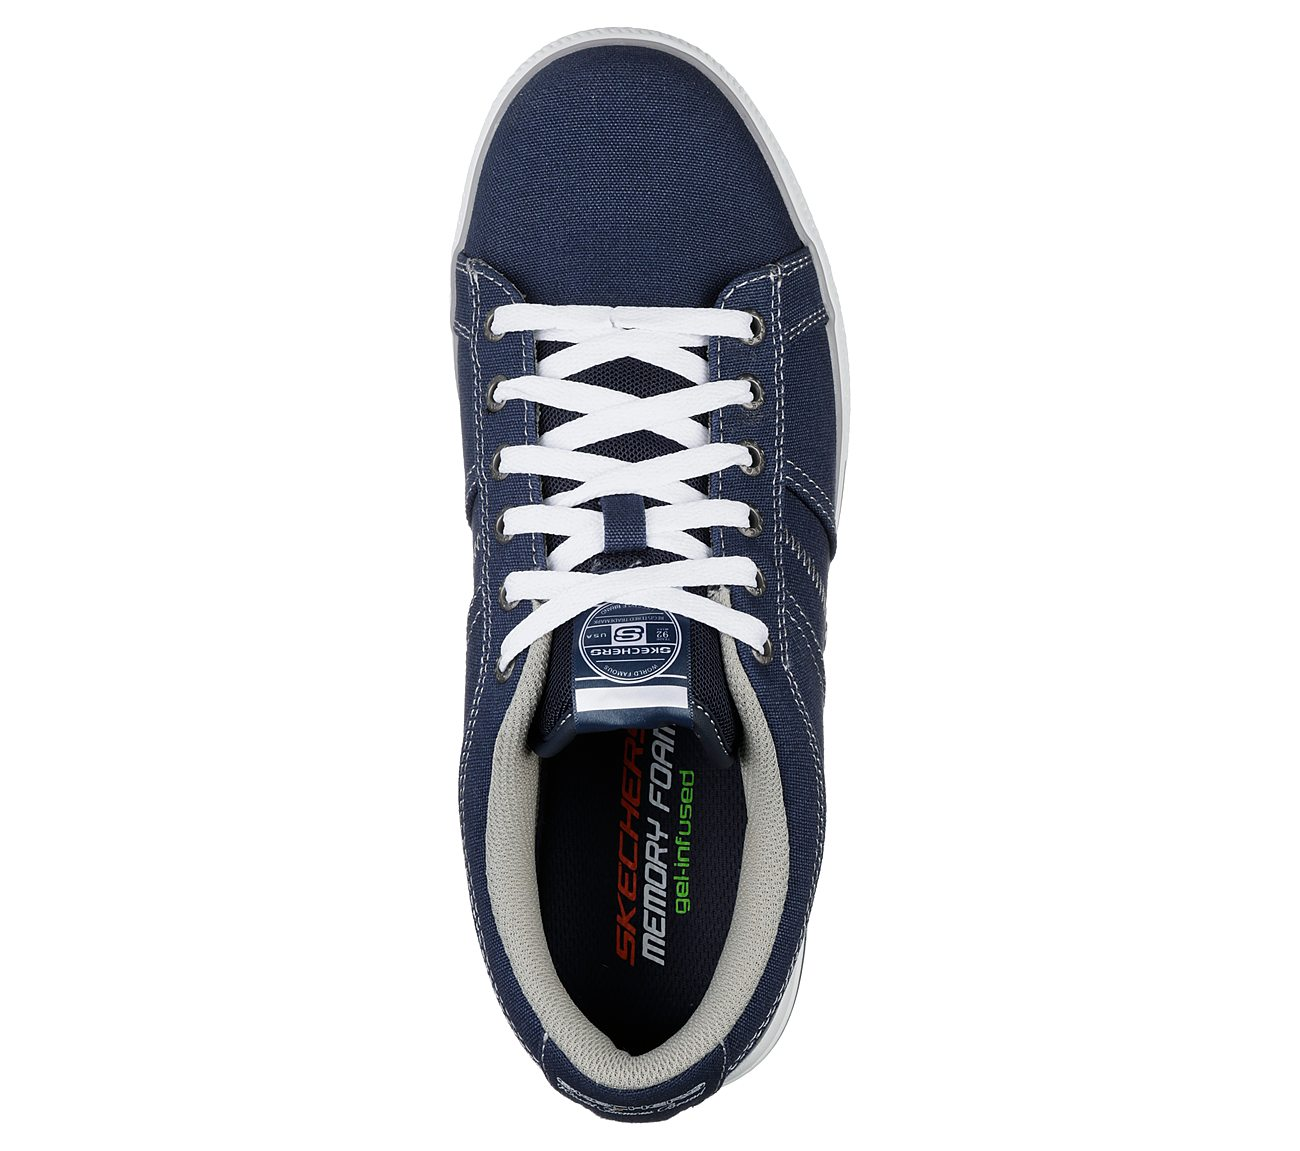 d9aa5910f672 Buy SKECHERS Arcade - Fulrow Sport Shoes only  80.00